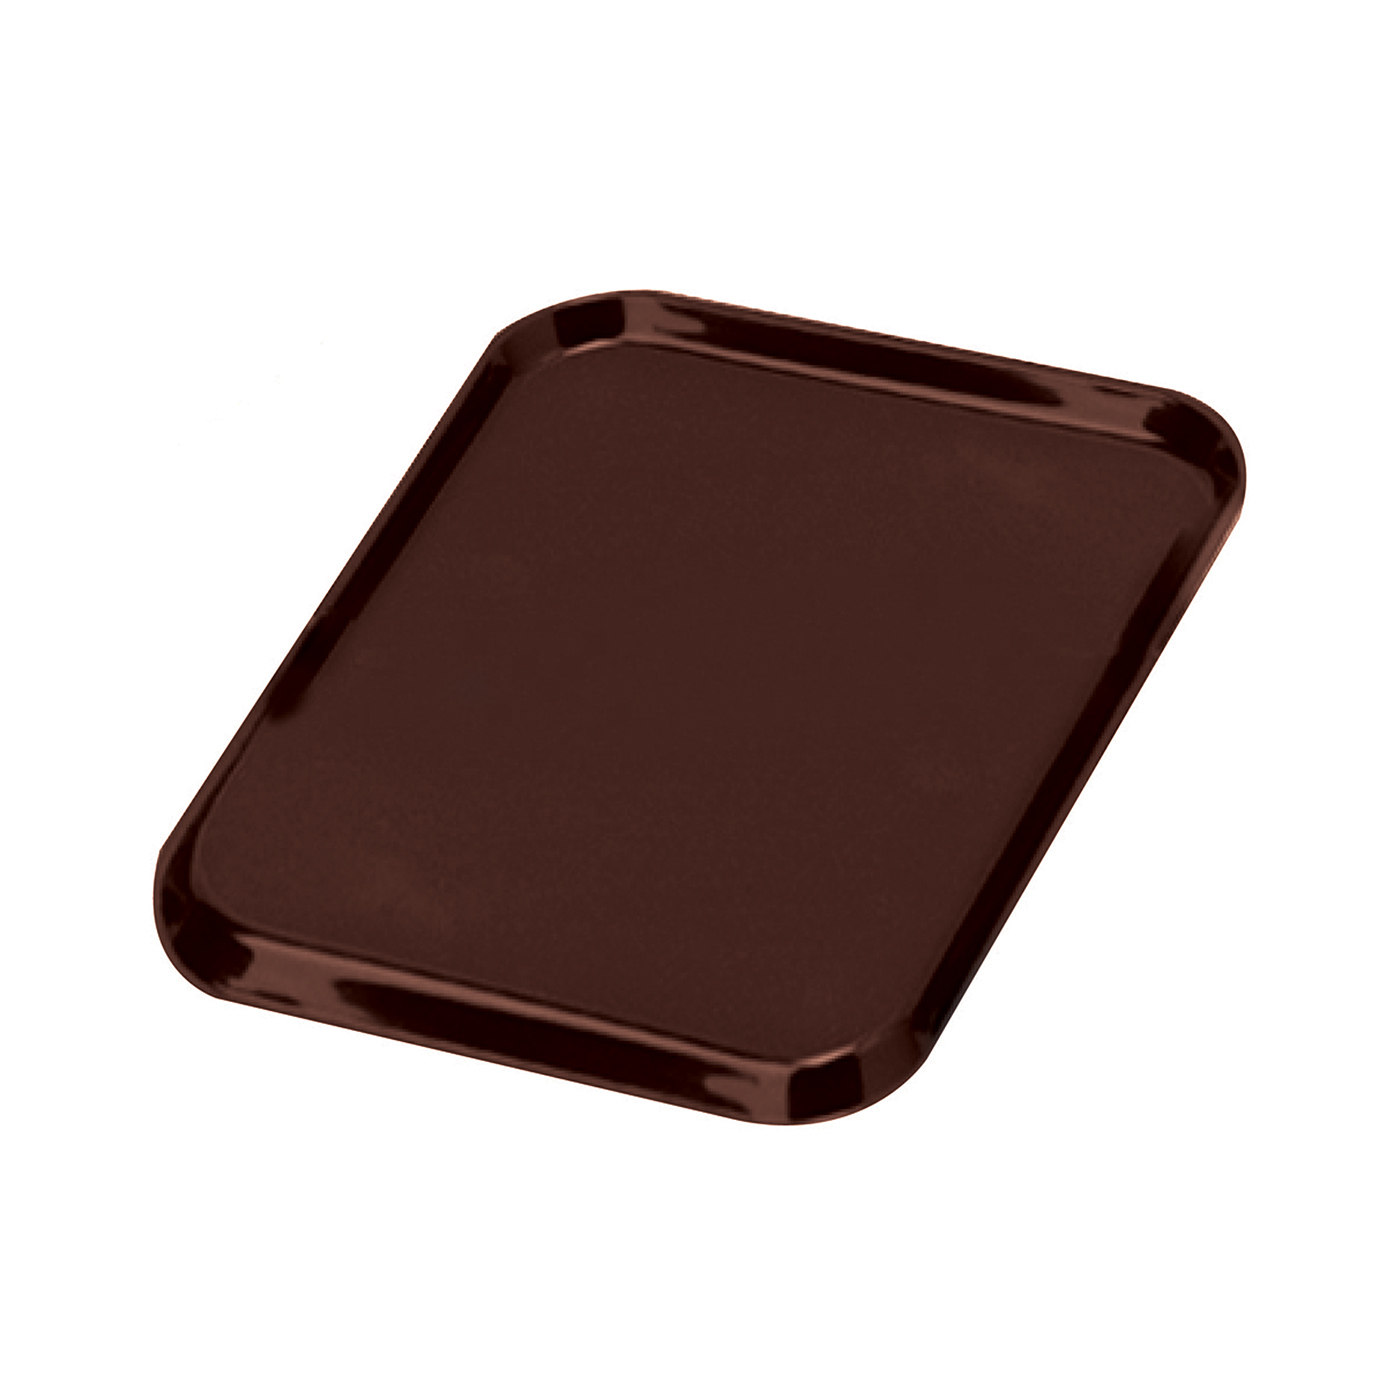 Washing Up Bowls / Brushes / Drainers Tray Non Slip Polypropylene Dishwasher Safe W390xD290mm Brown